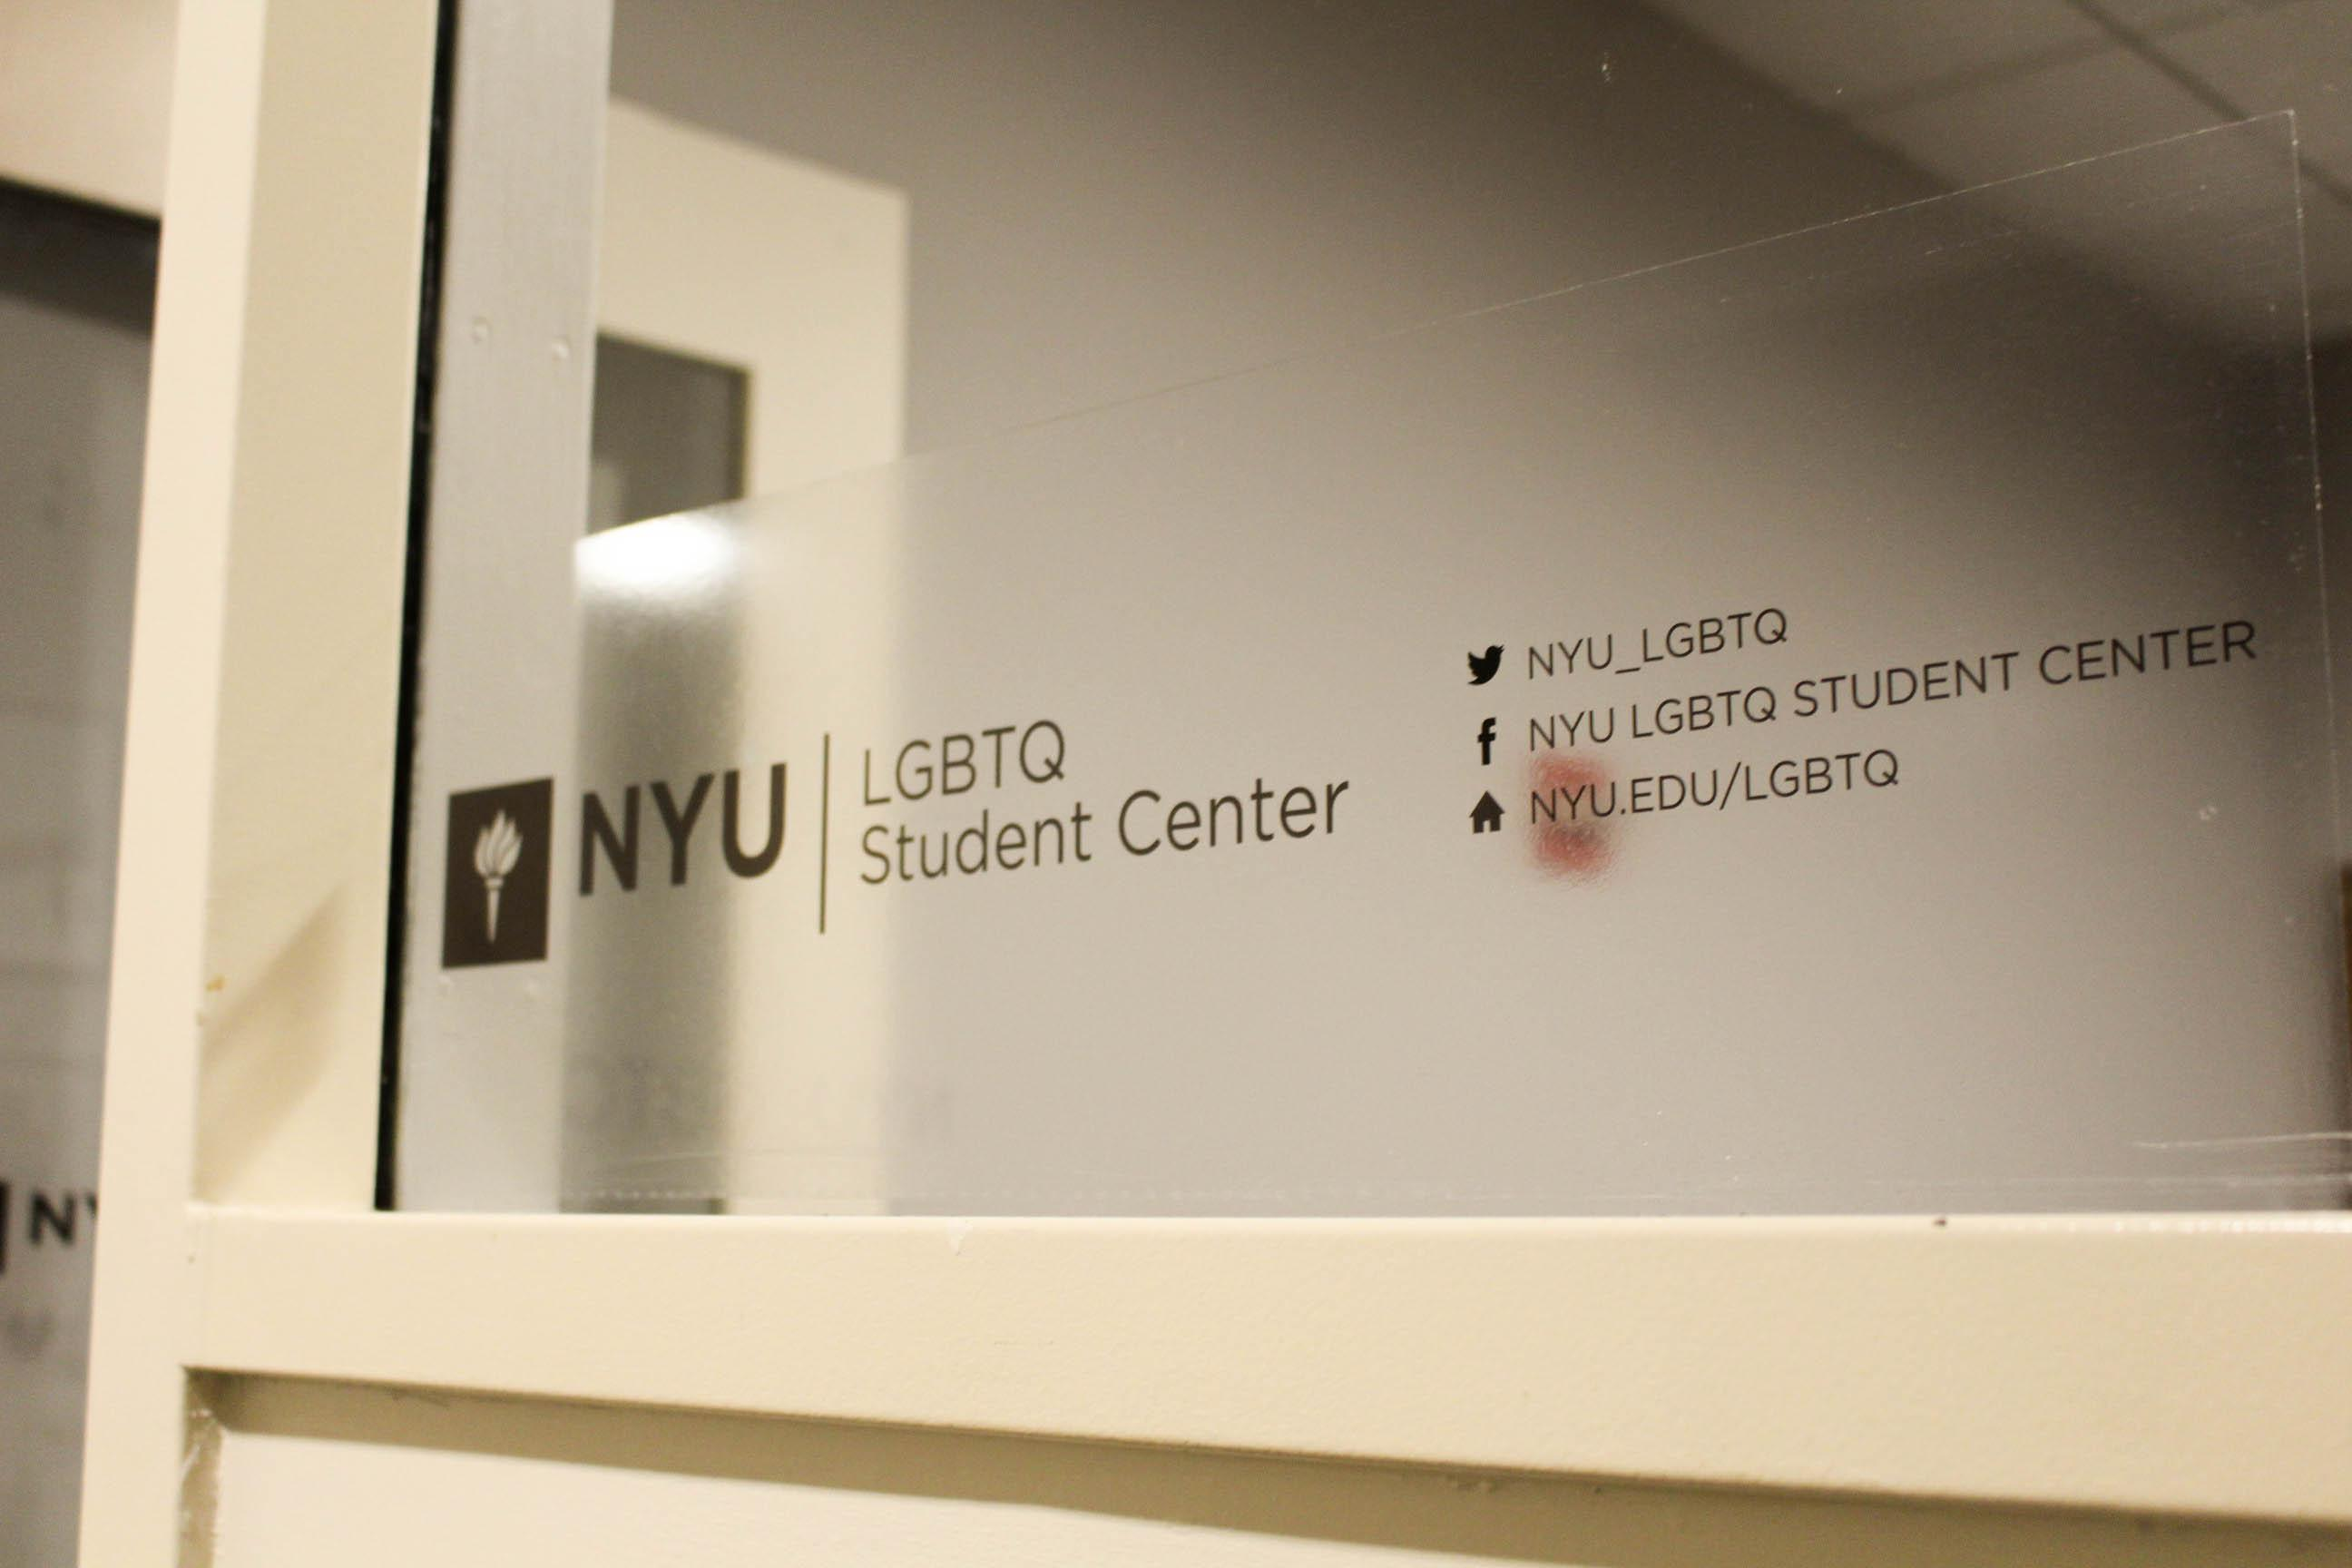 NYU provides many resources for the LGBTQ community, but some students feel as if it lacks trans-specific initiatives.